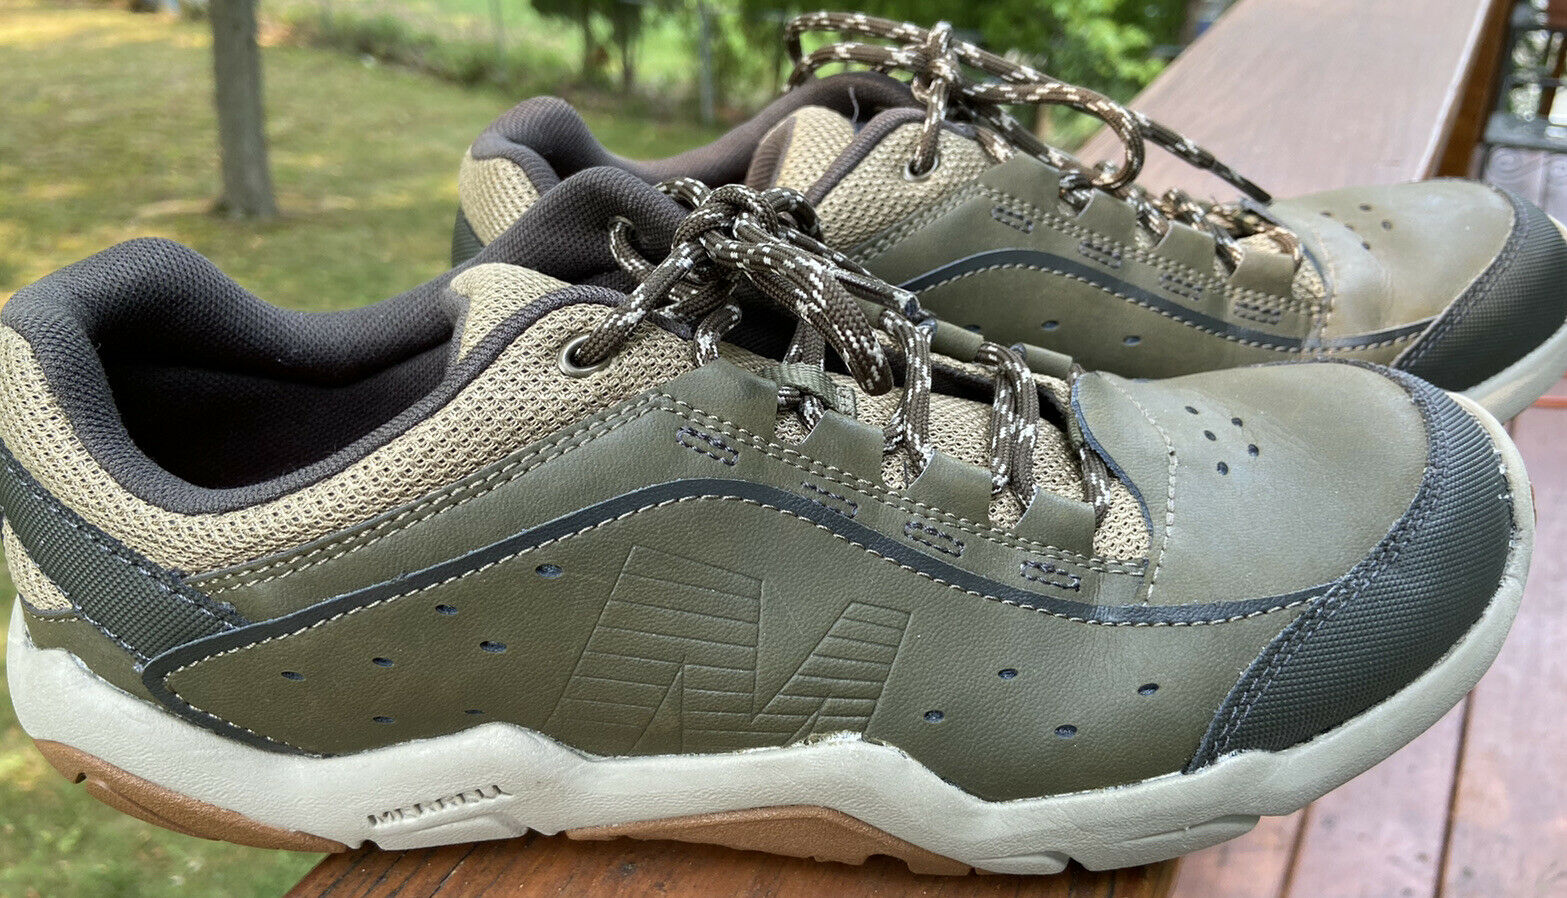 Merrell Traveso Dusty Olive Lace-Up Hiking Sneaker Shoes J310544C Mens Size 9